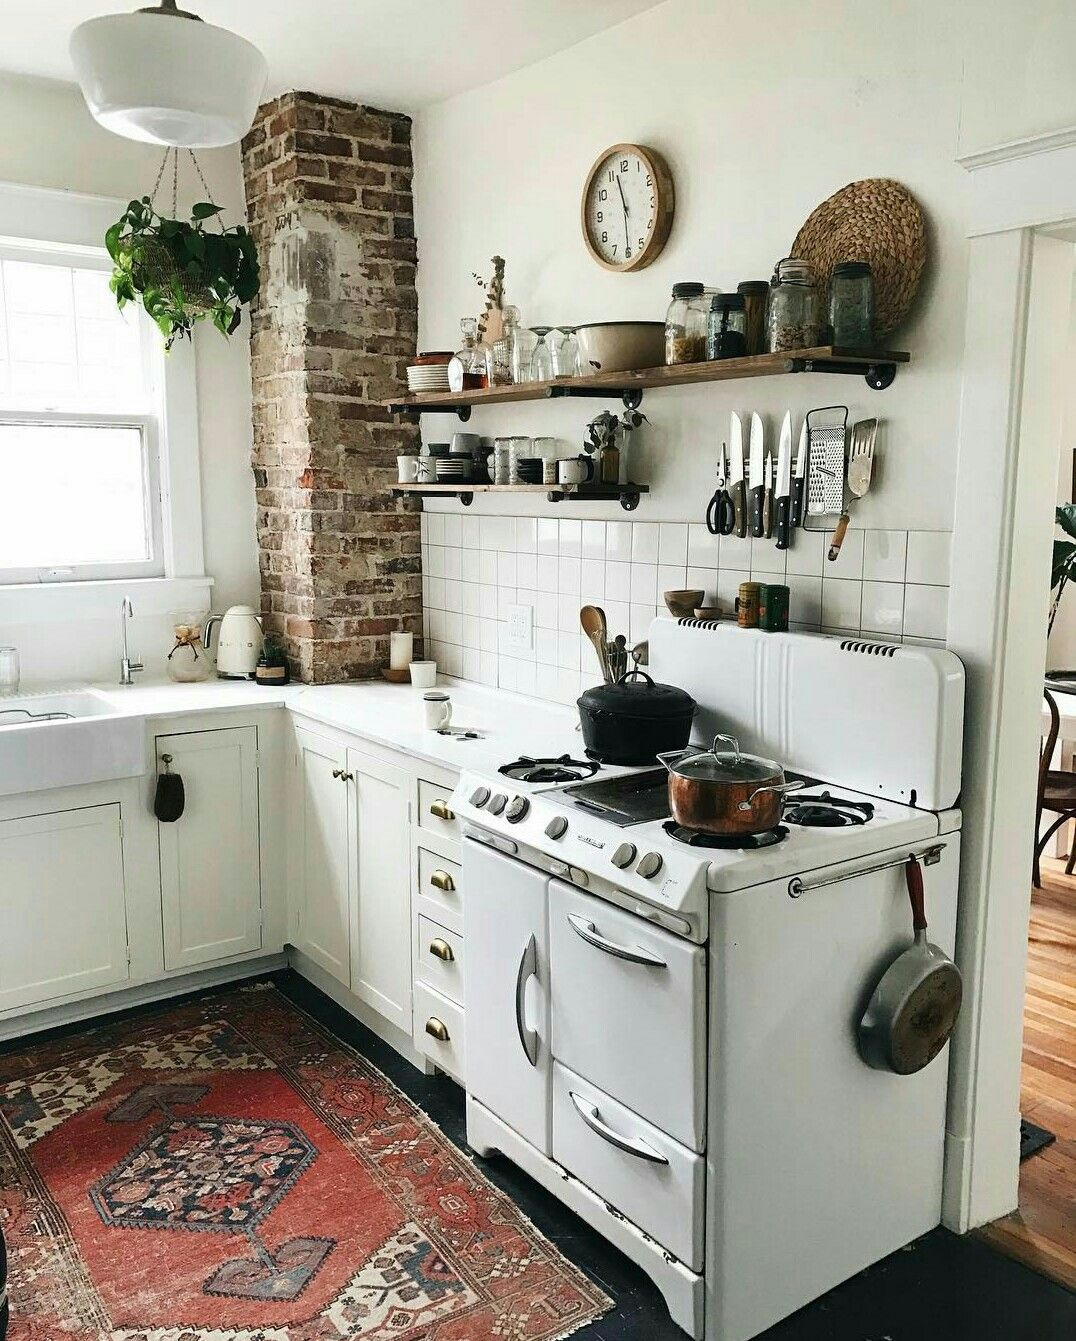 Vintage Inspired All White Kitchen With Exposed Brick And Black